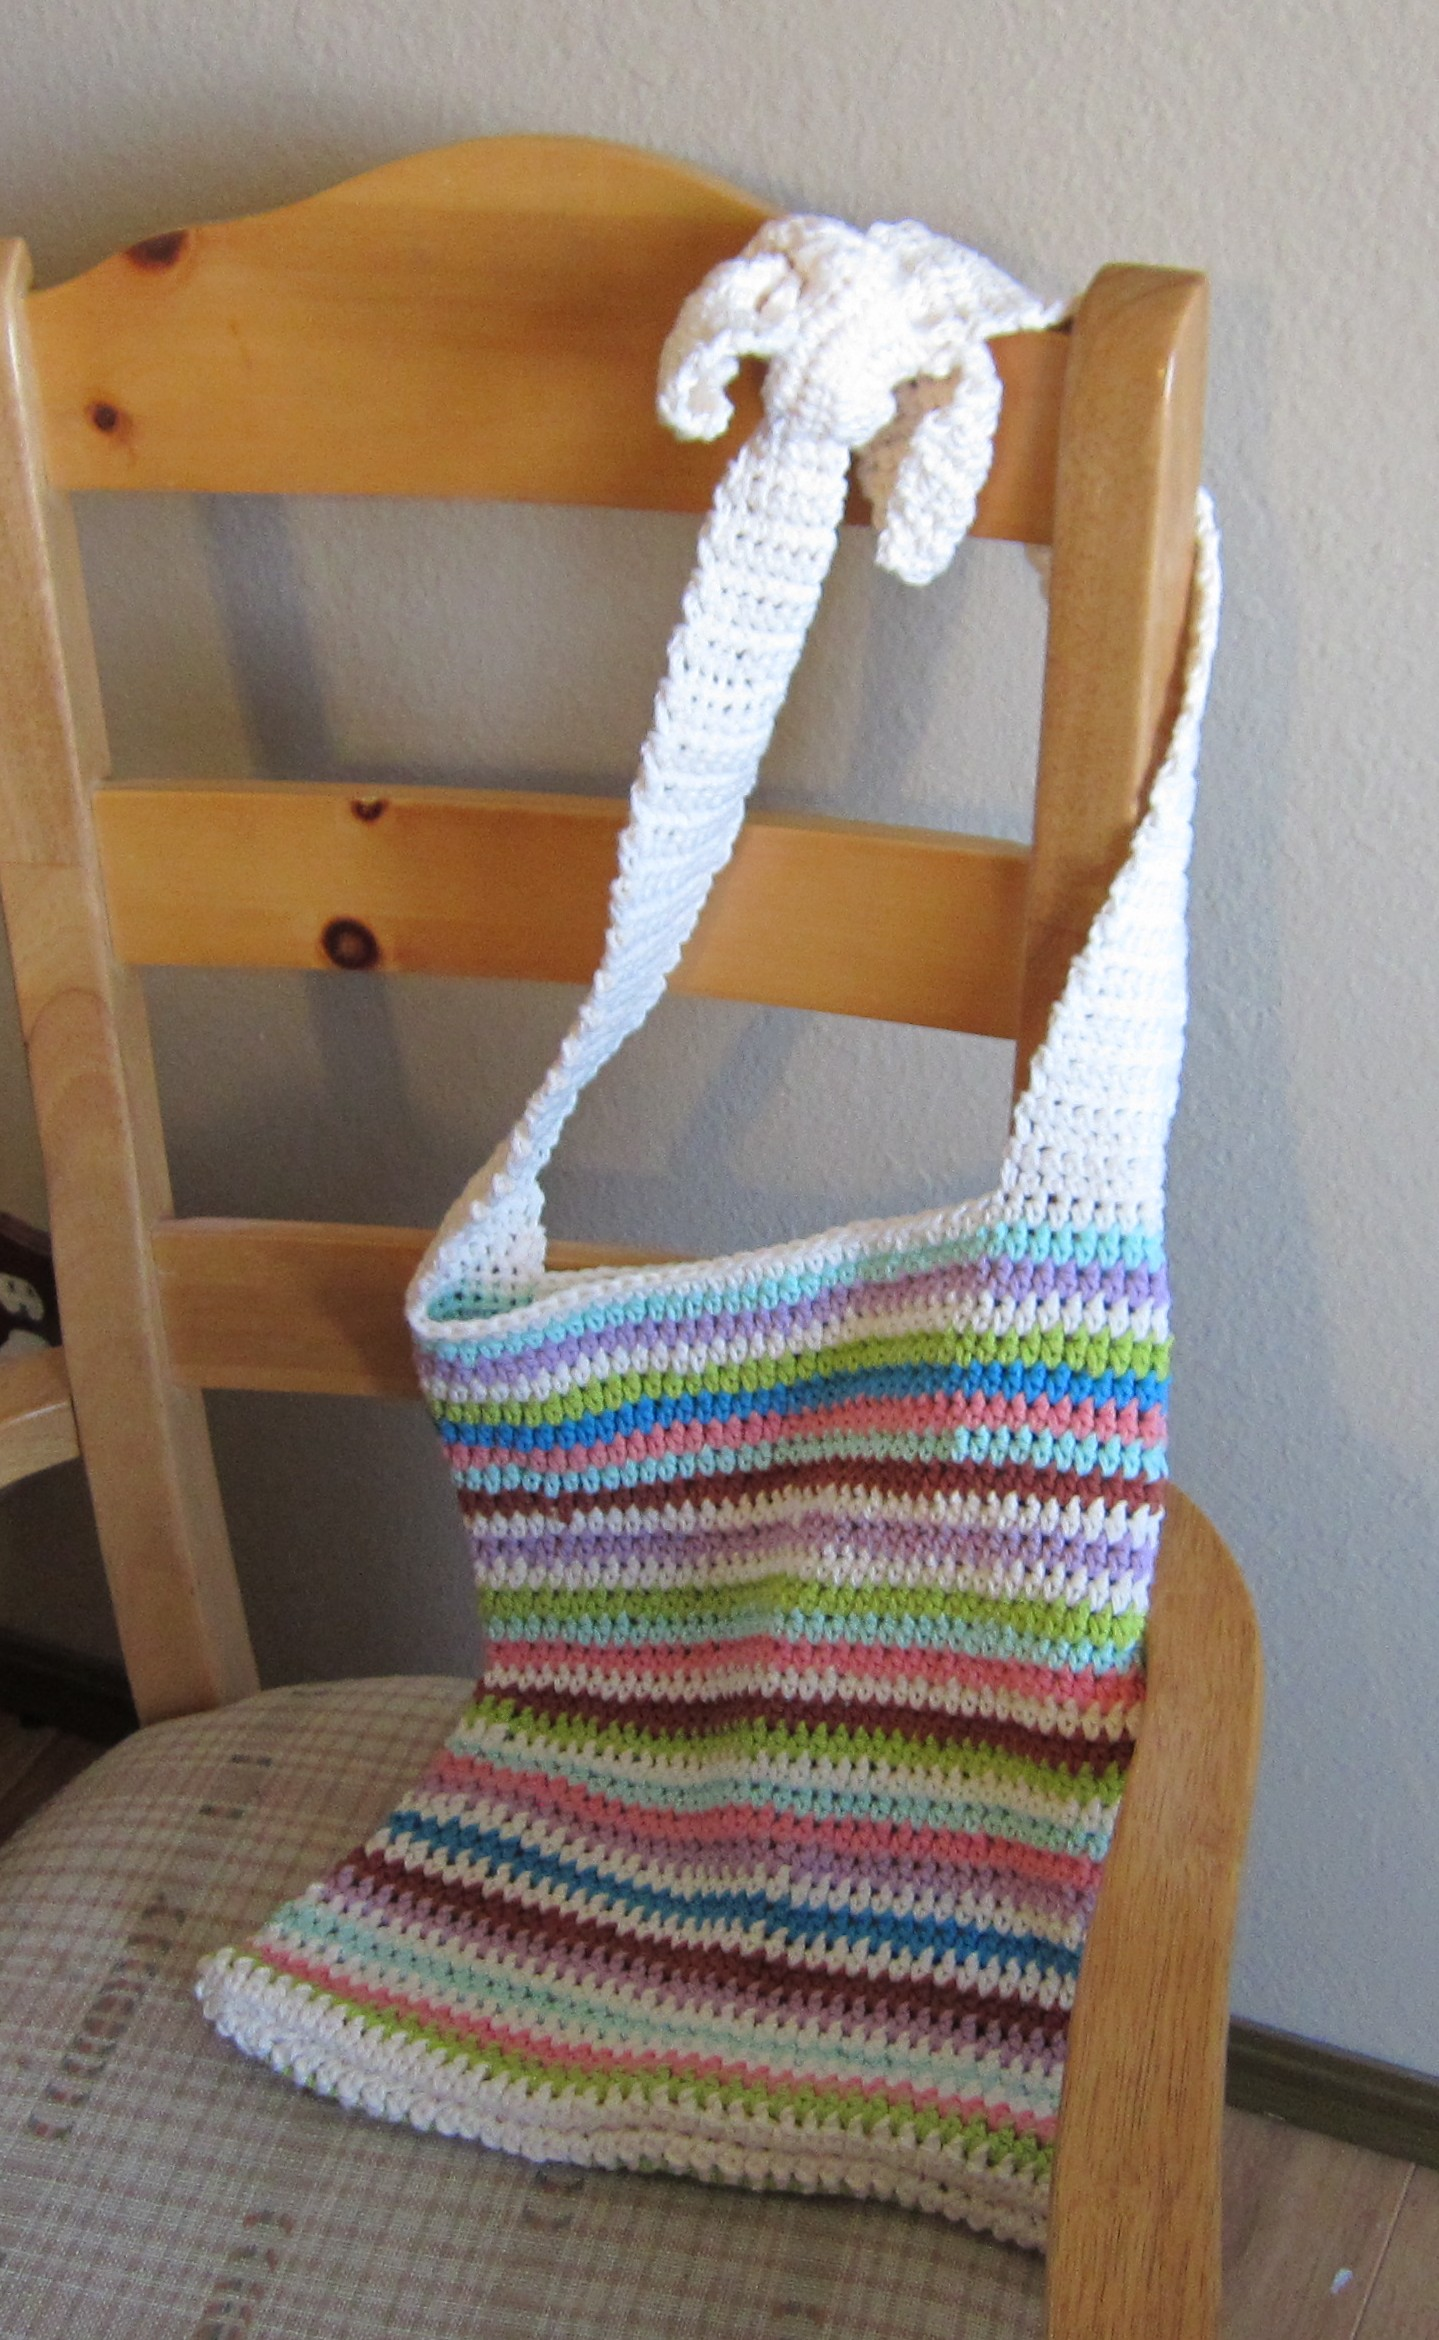 Crochet Hobo Bag : Crochet Tote/Hobo Bag/Purse This Desert Tote is Great For any Occasion ...